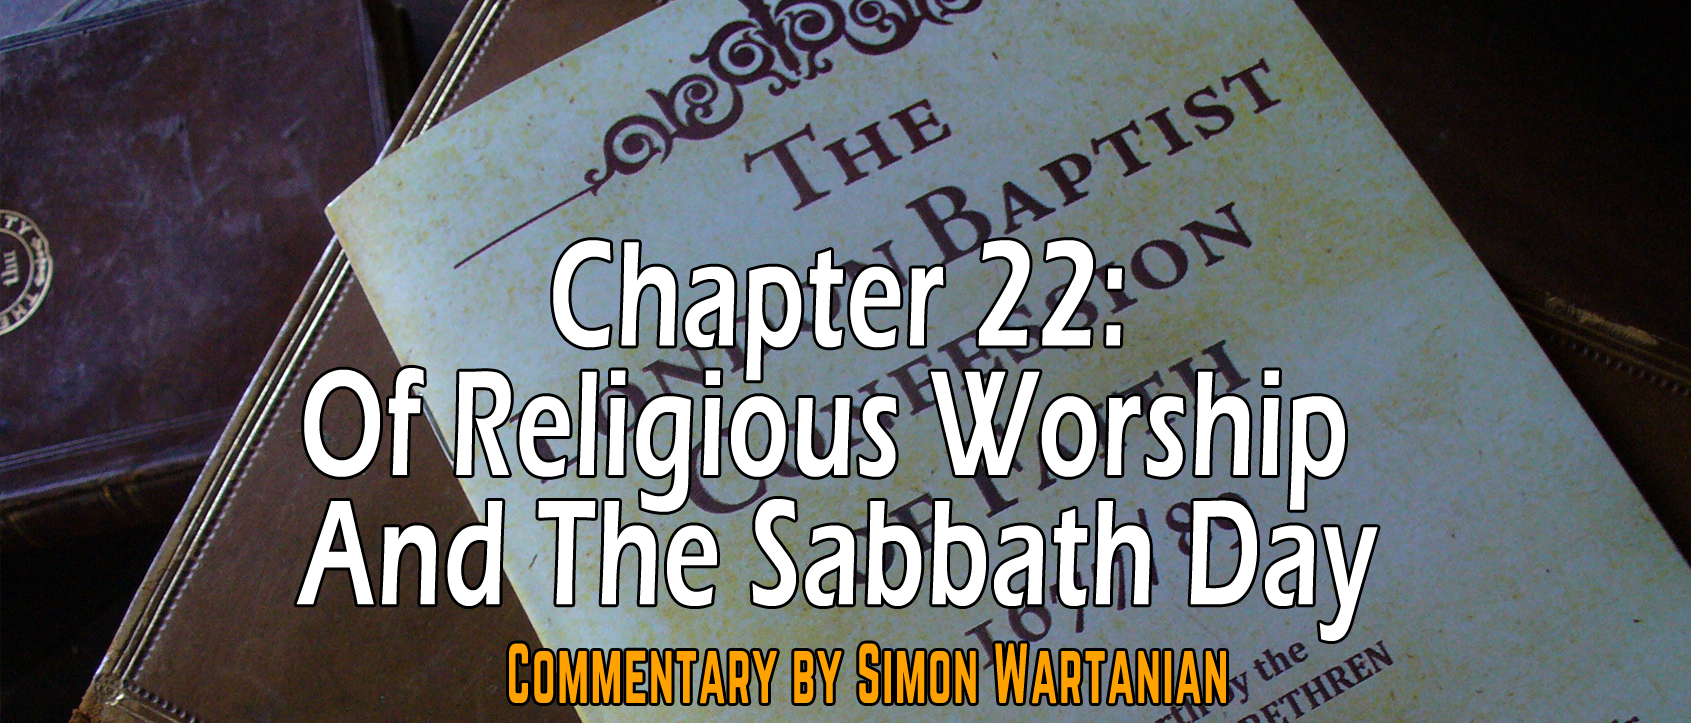 1689 Baptist Confession Chapter 22: Of Religious Worship and the Sabbath Day - Commentary